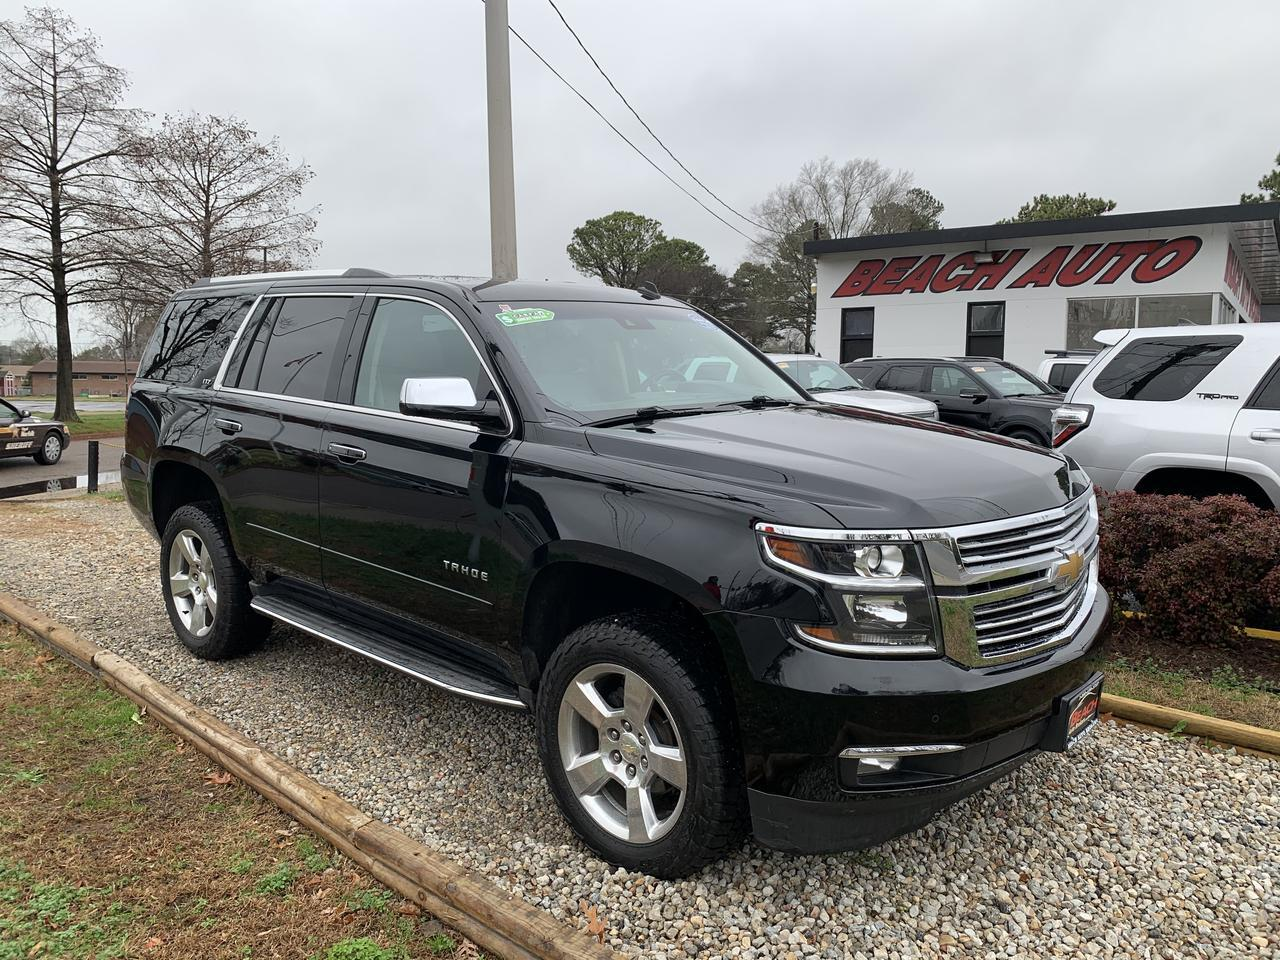 2015 CHEVROLET TAHOE LTZ 4X4, WARRANTY, LEATHER, SUNROOF, NAV, BLUETOOTH, ONSTAR, 3RD ROW, CAPTAINS CHAIRS, BACKUP CAM! Norfolk VA